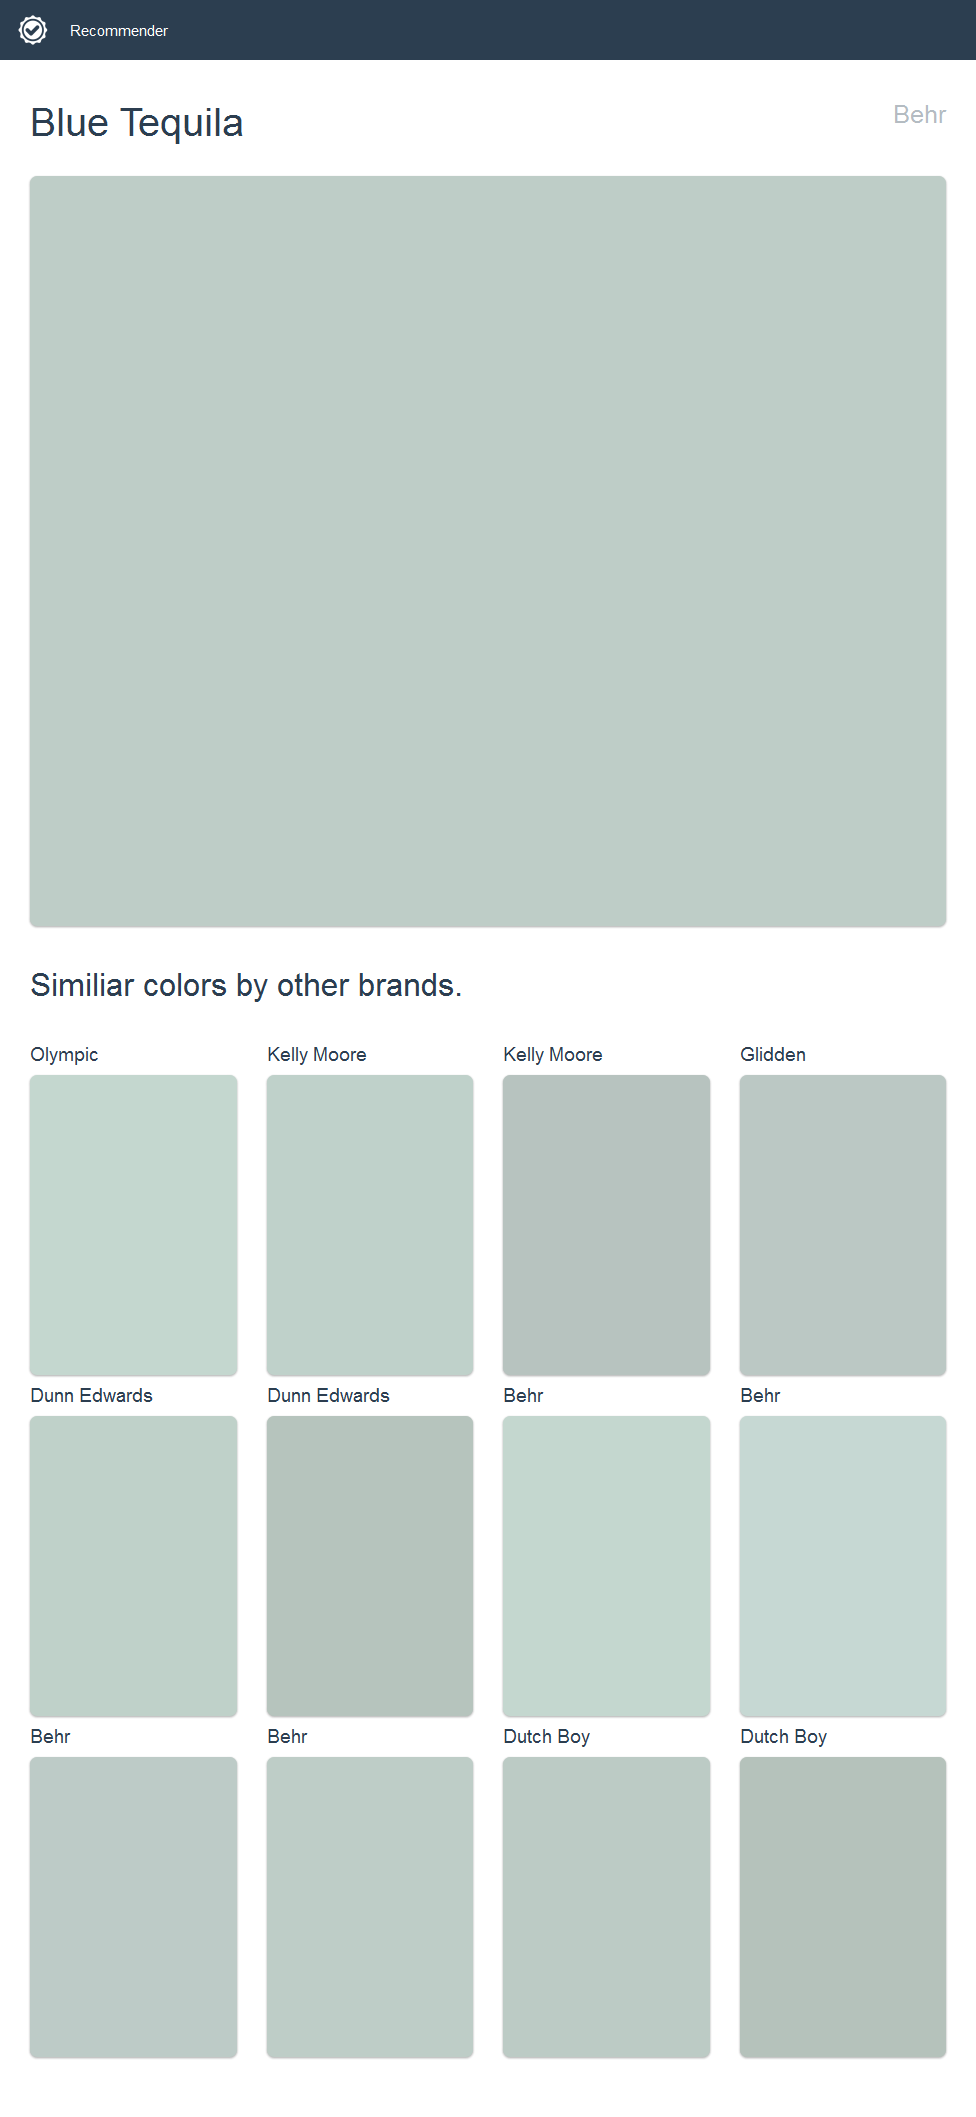 Blue tequila behr click the image to see similiar colors by blue tequila behr click the image to see similiar colors by other brands nvjuhfo Choice Image